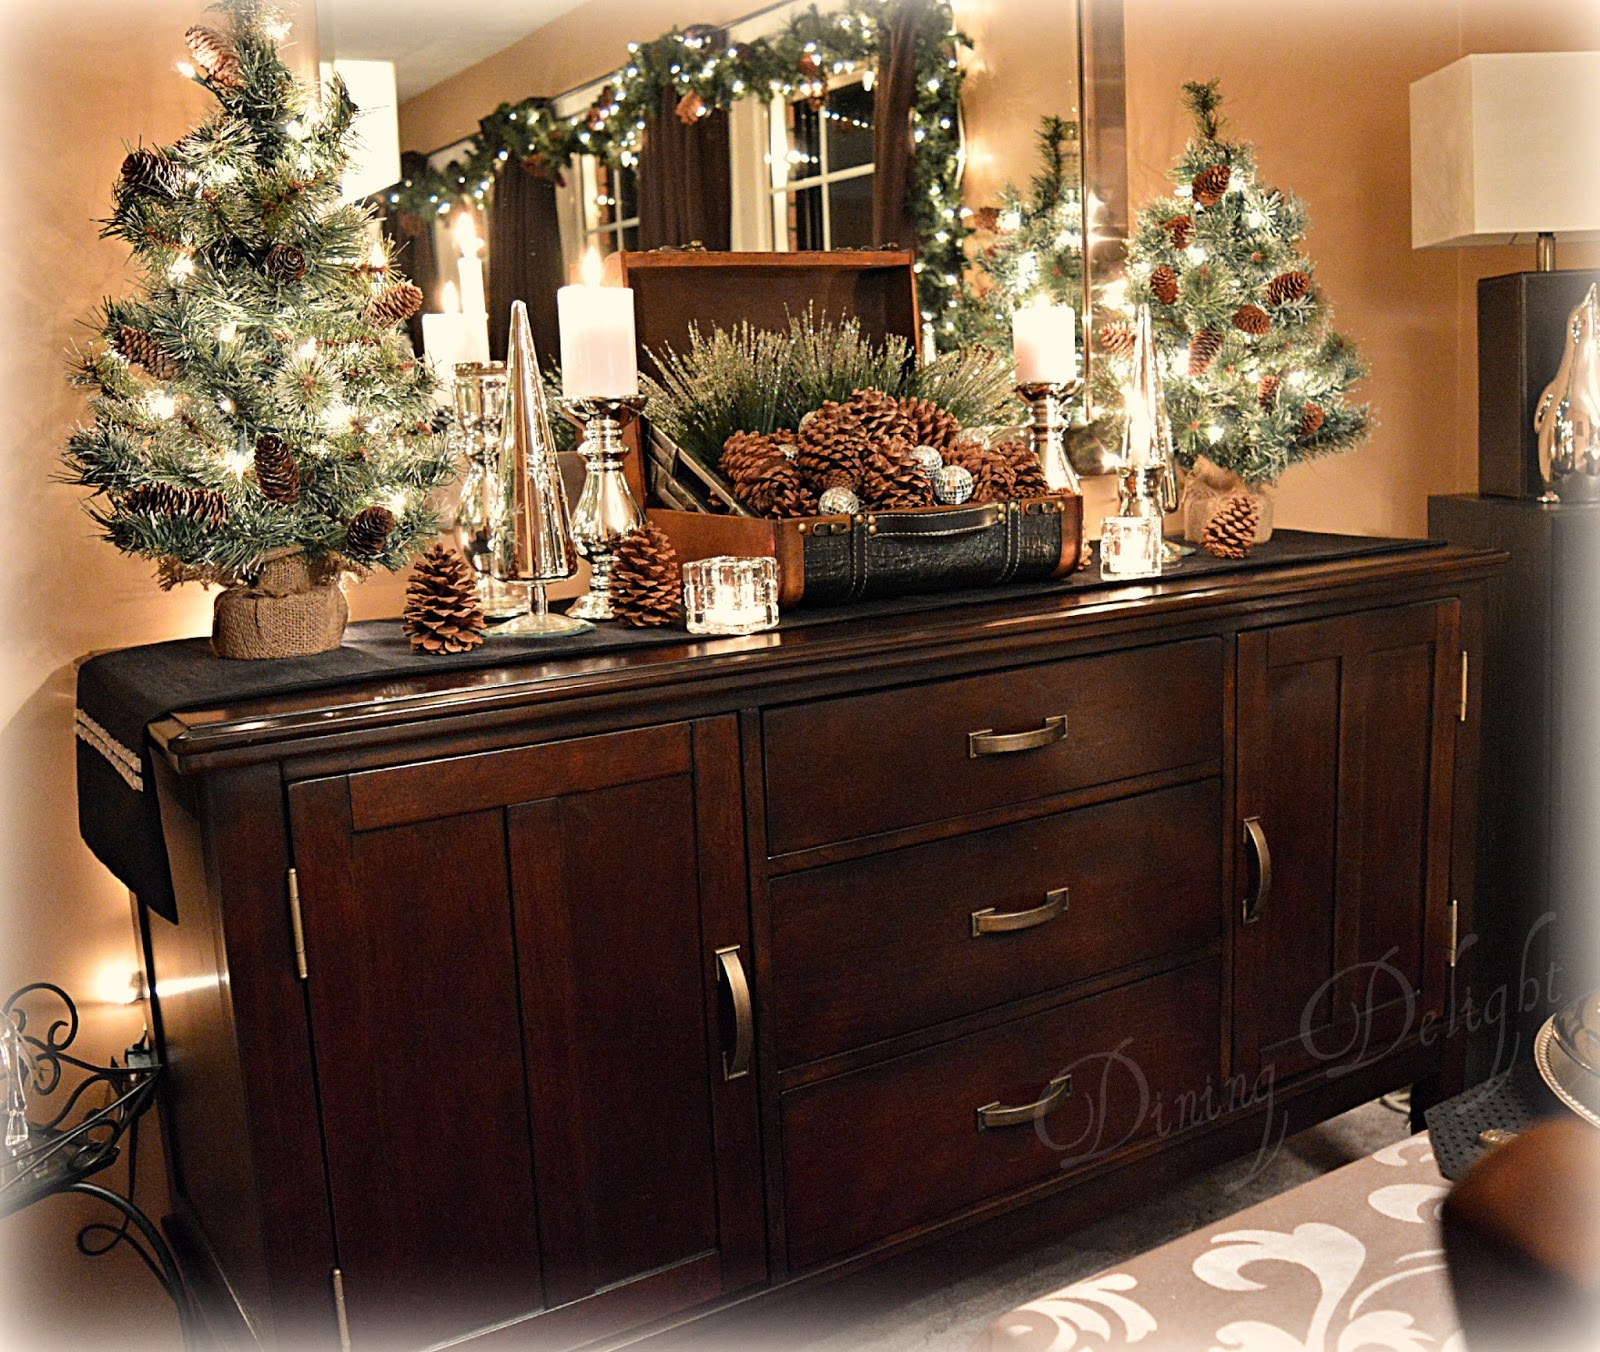 Dining Delight: Pine Cones & Candles For Christmas